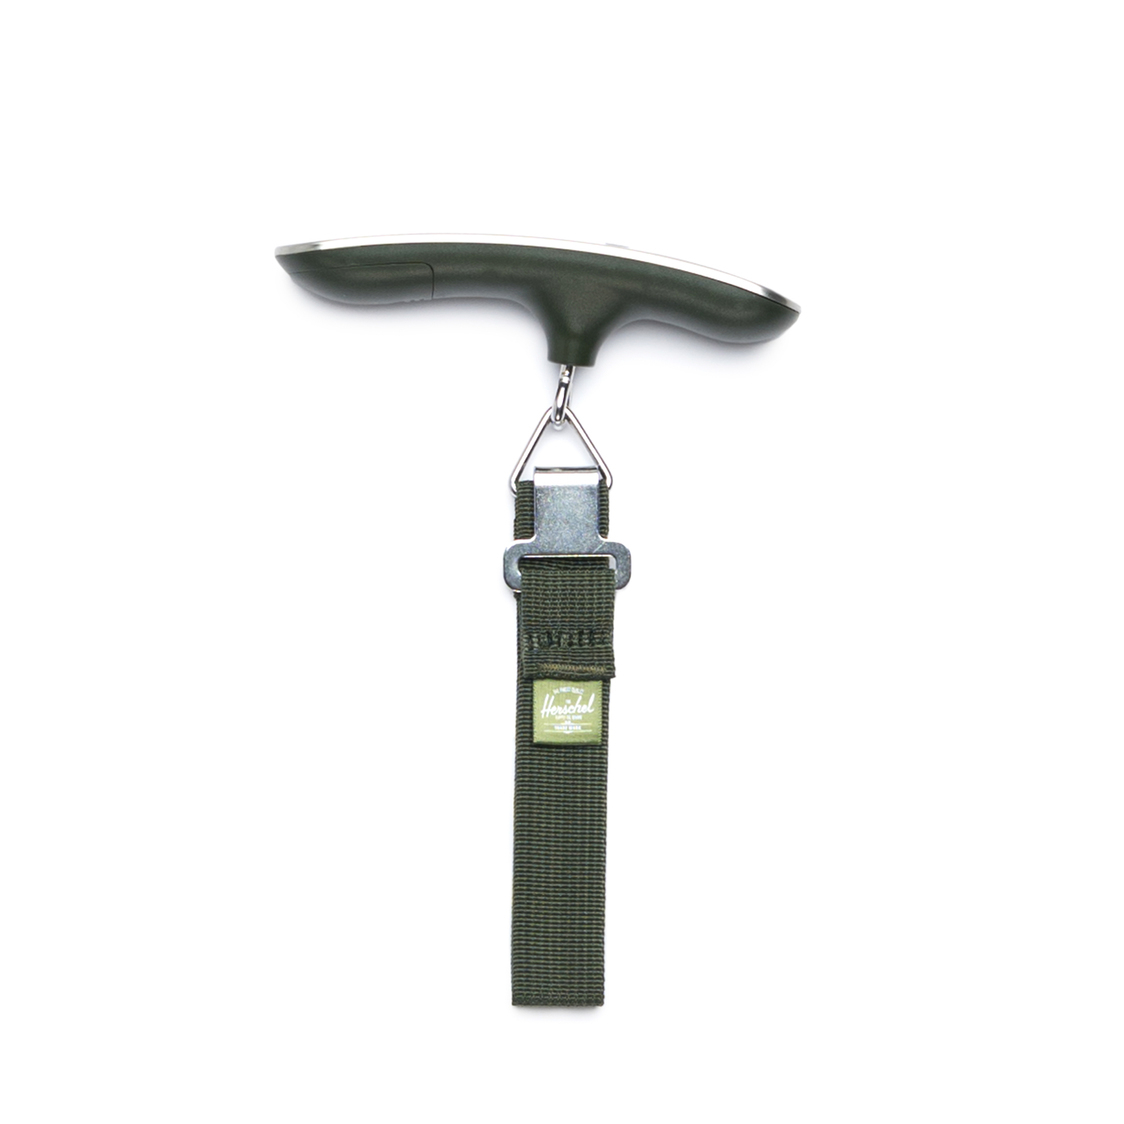 Luggage Scale Cypress 10524-02712-OS